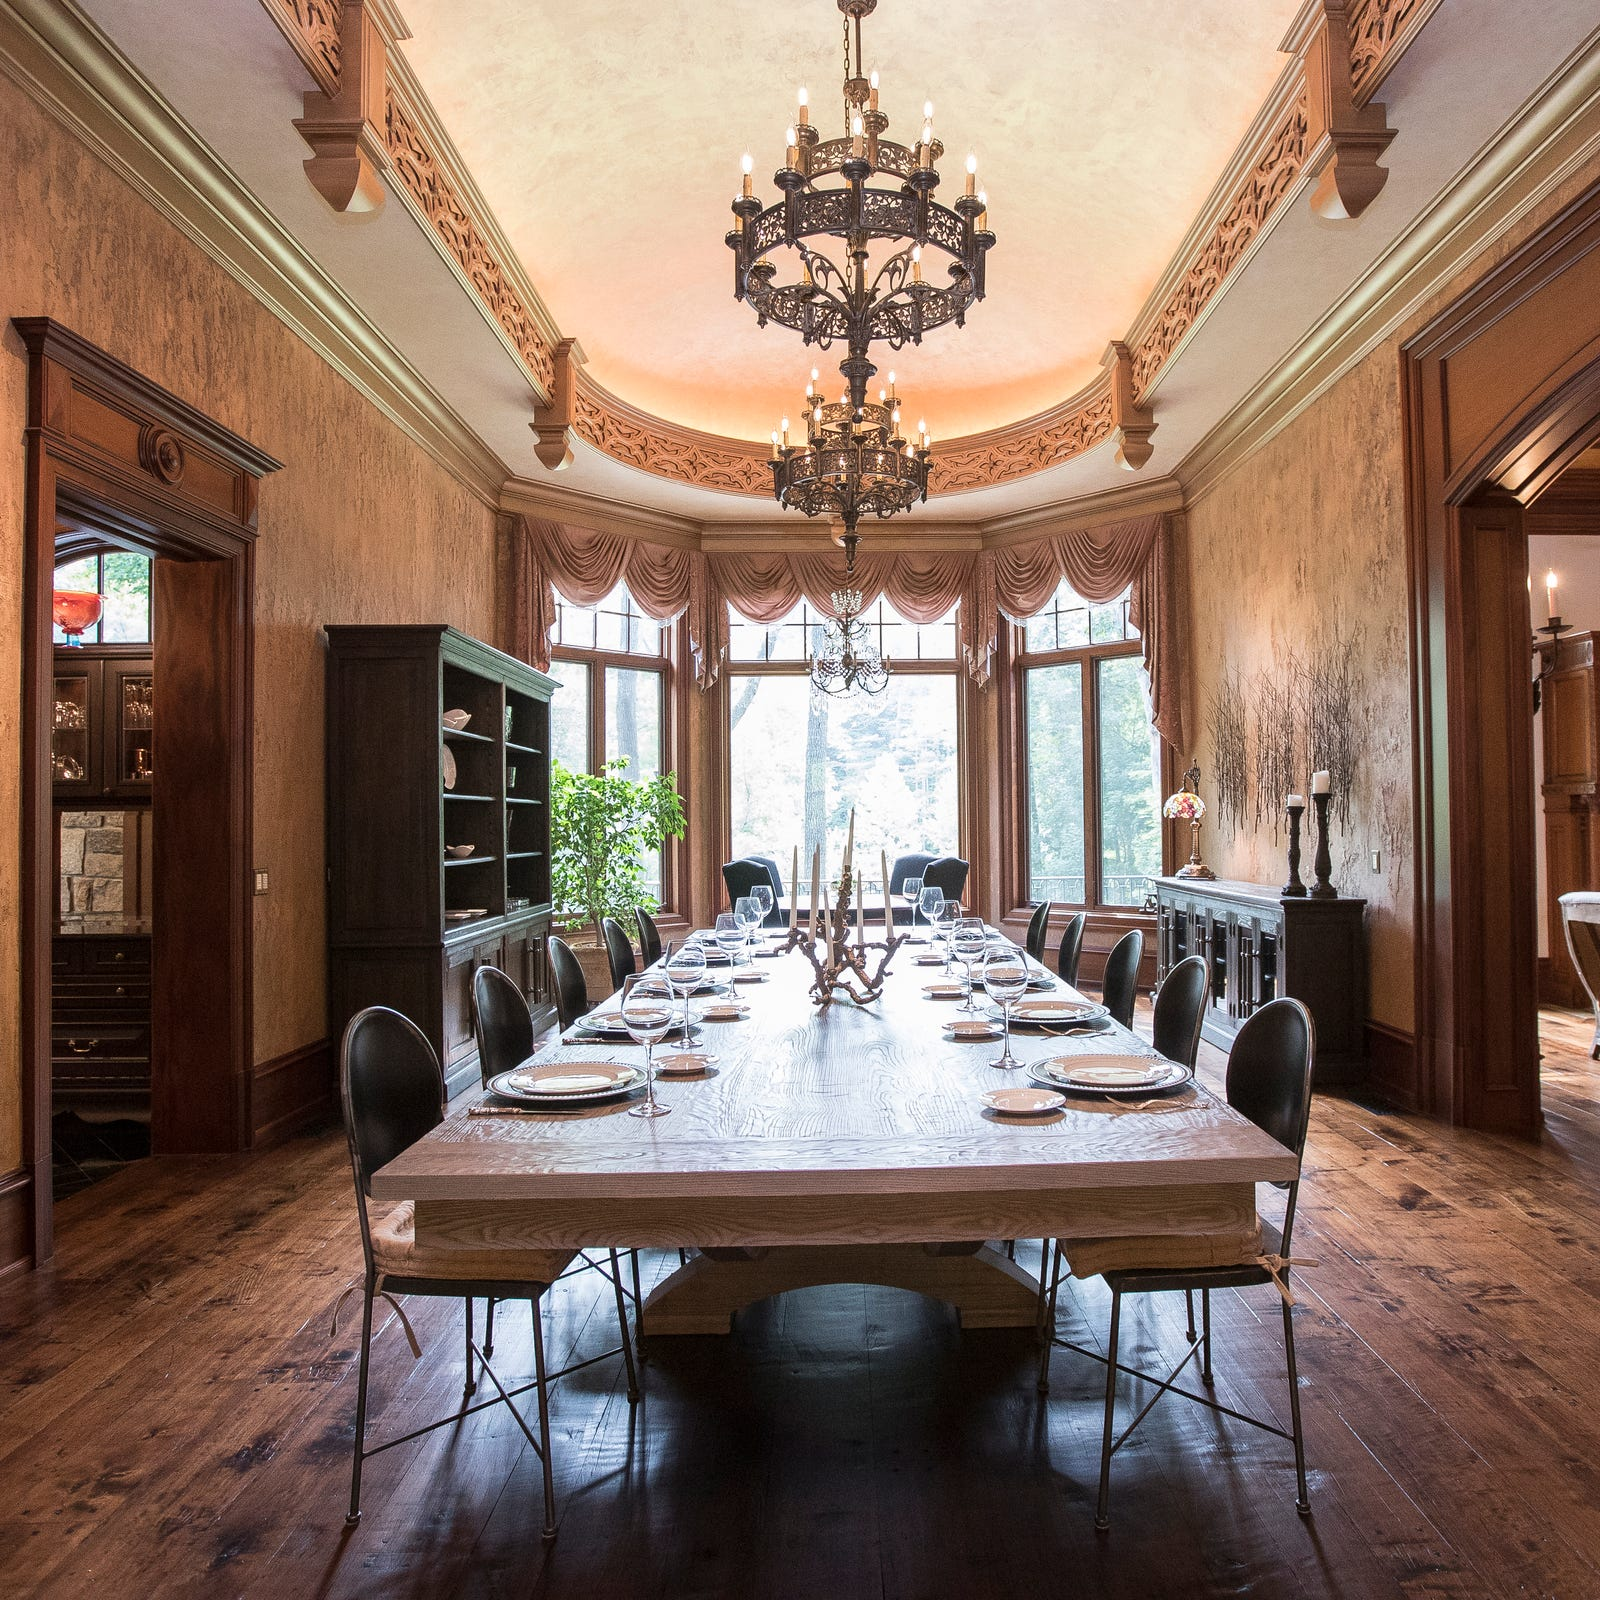 What you get for $7.5M: Room to entertain 350 and a lot of mahogany